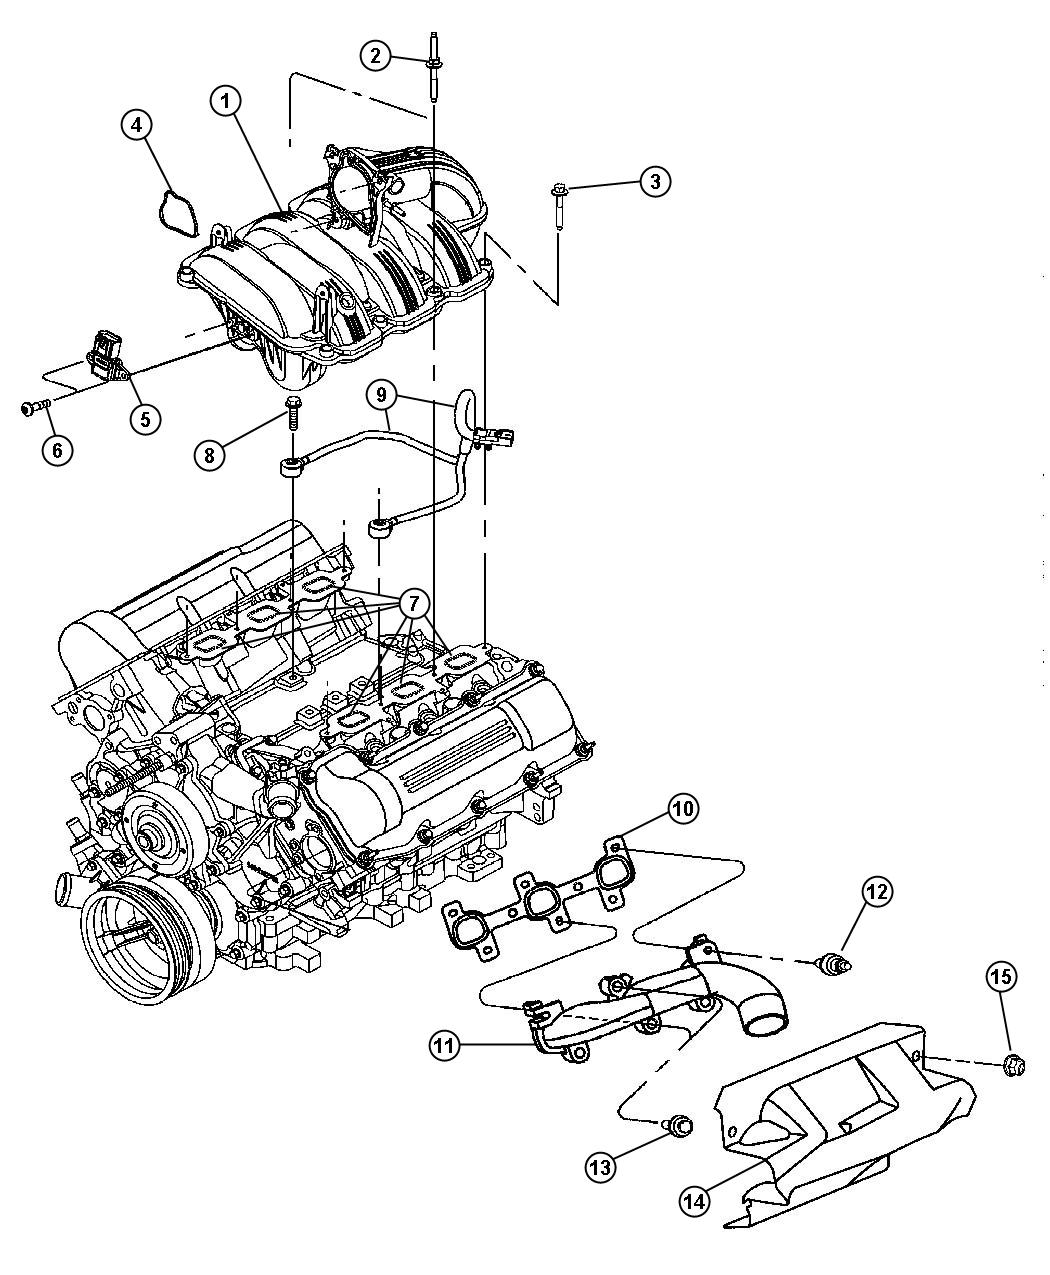 Wiring Diagram For A Daimler Chrysler Radio